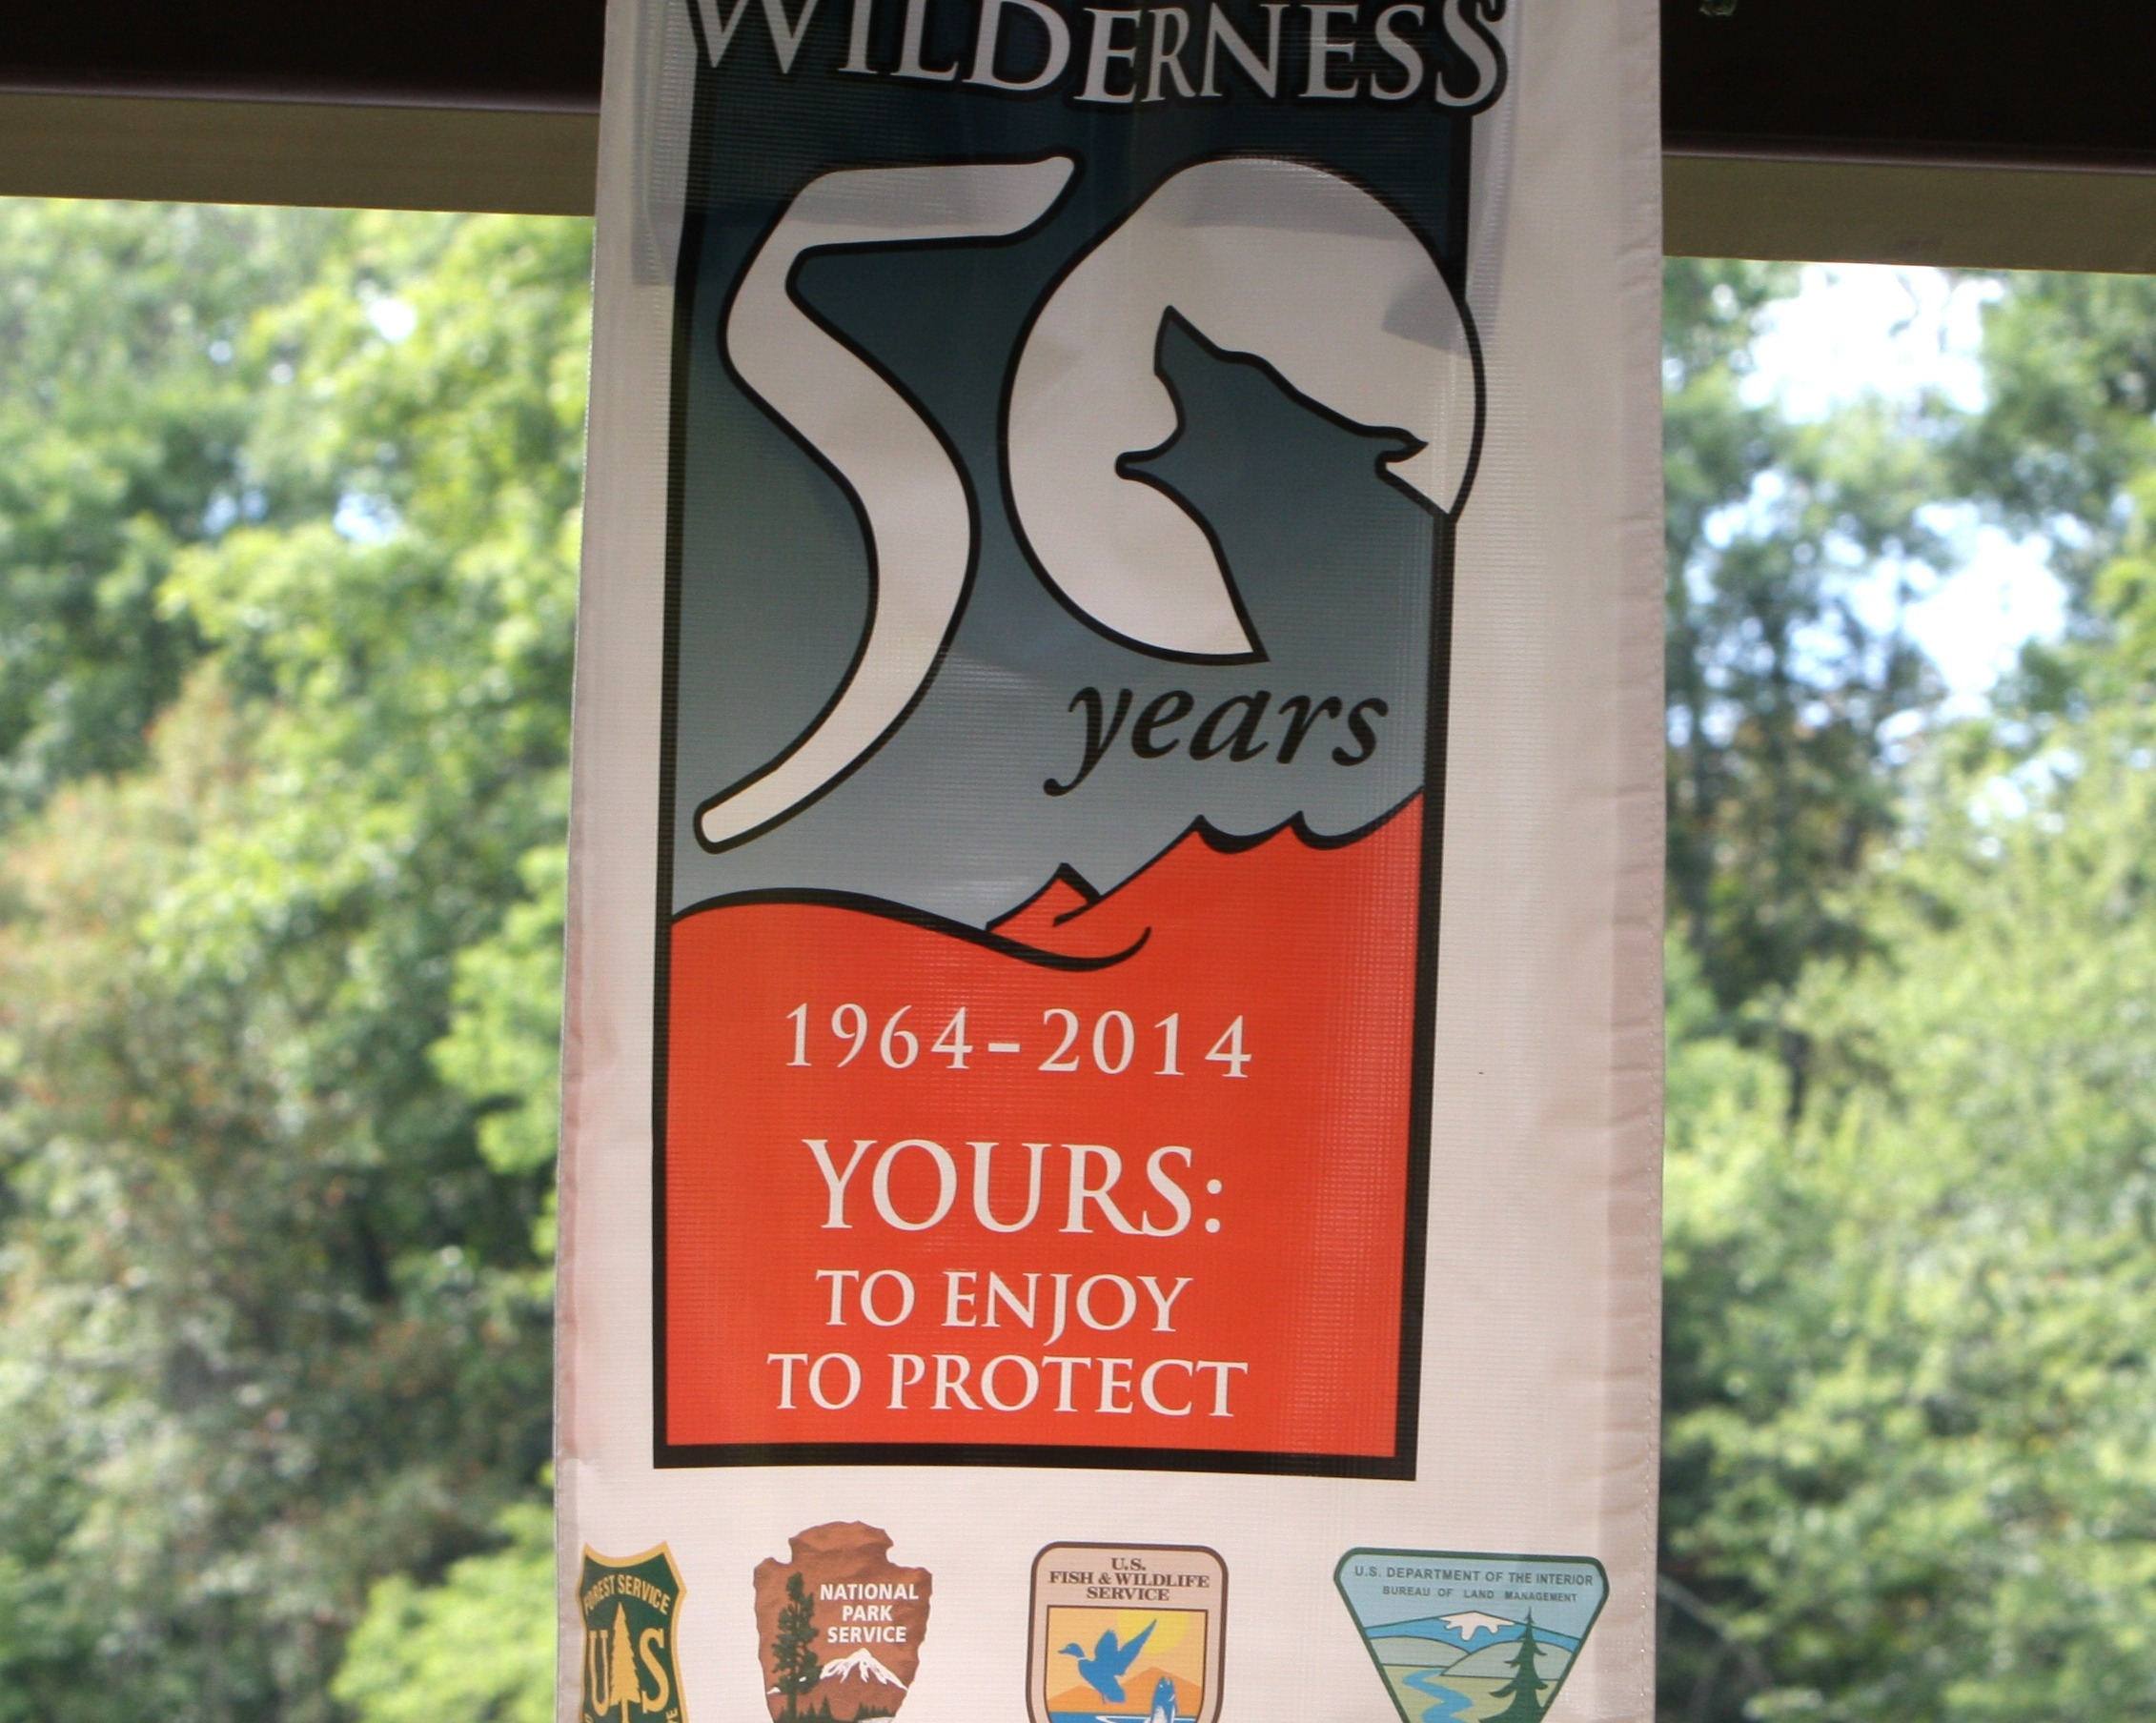 f75cd55a51f153cc5921_Wilderness_50_Years_Poster.jpg